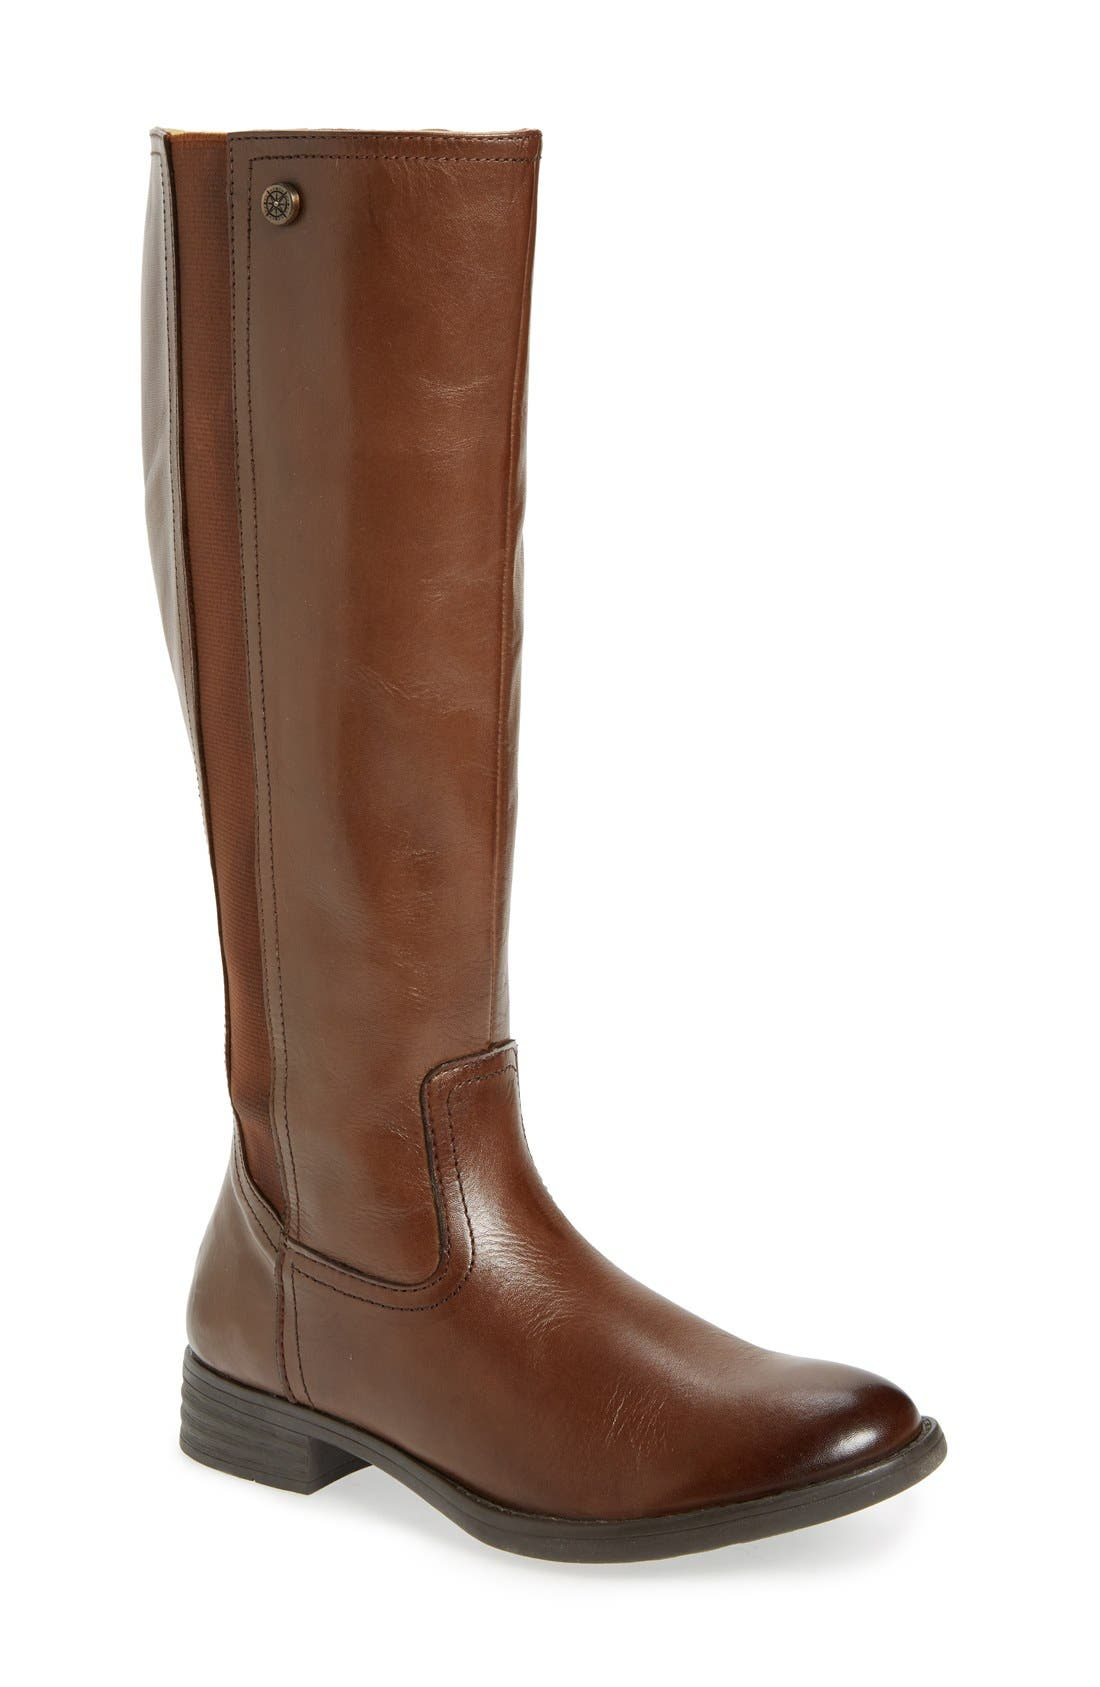 Main Image - Bussola 'Tanga' Riding Boot (Women)